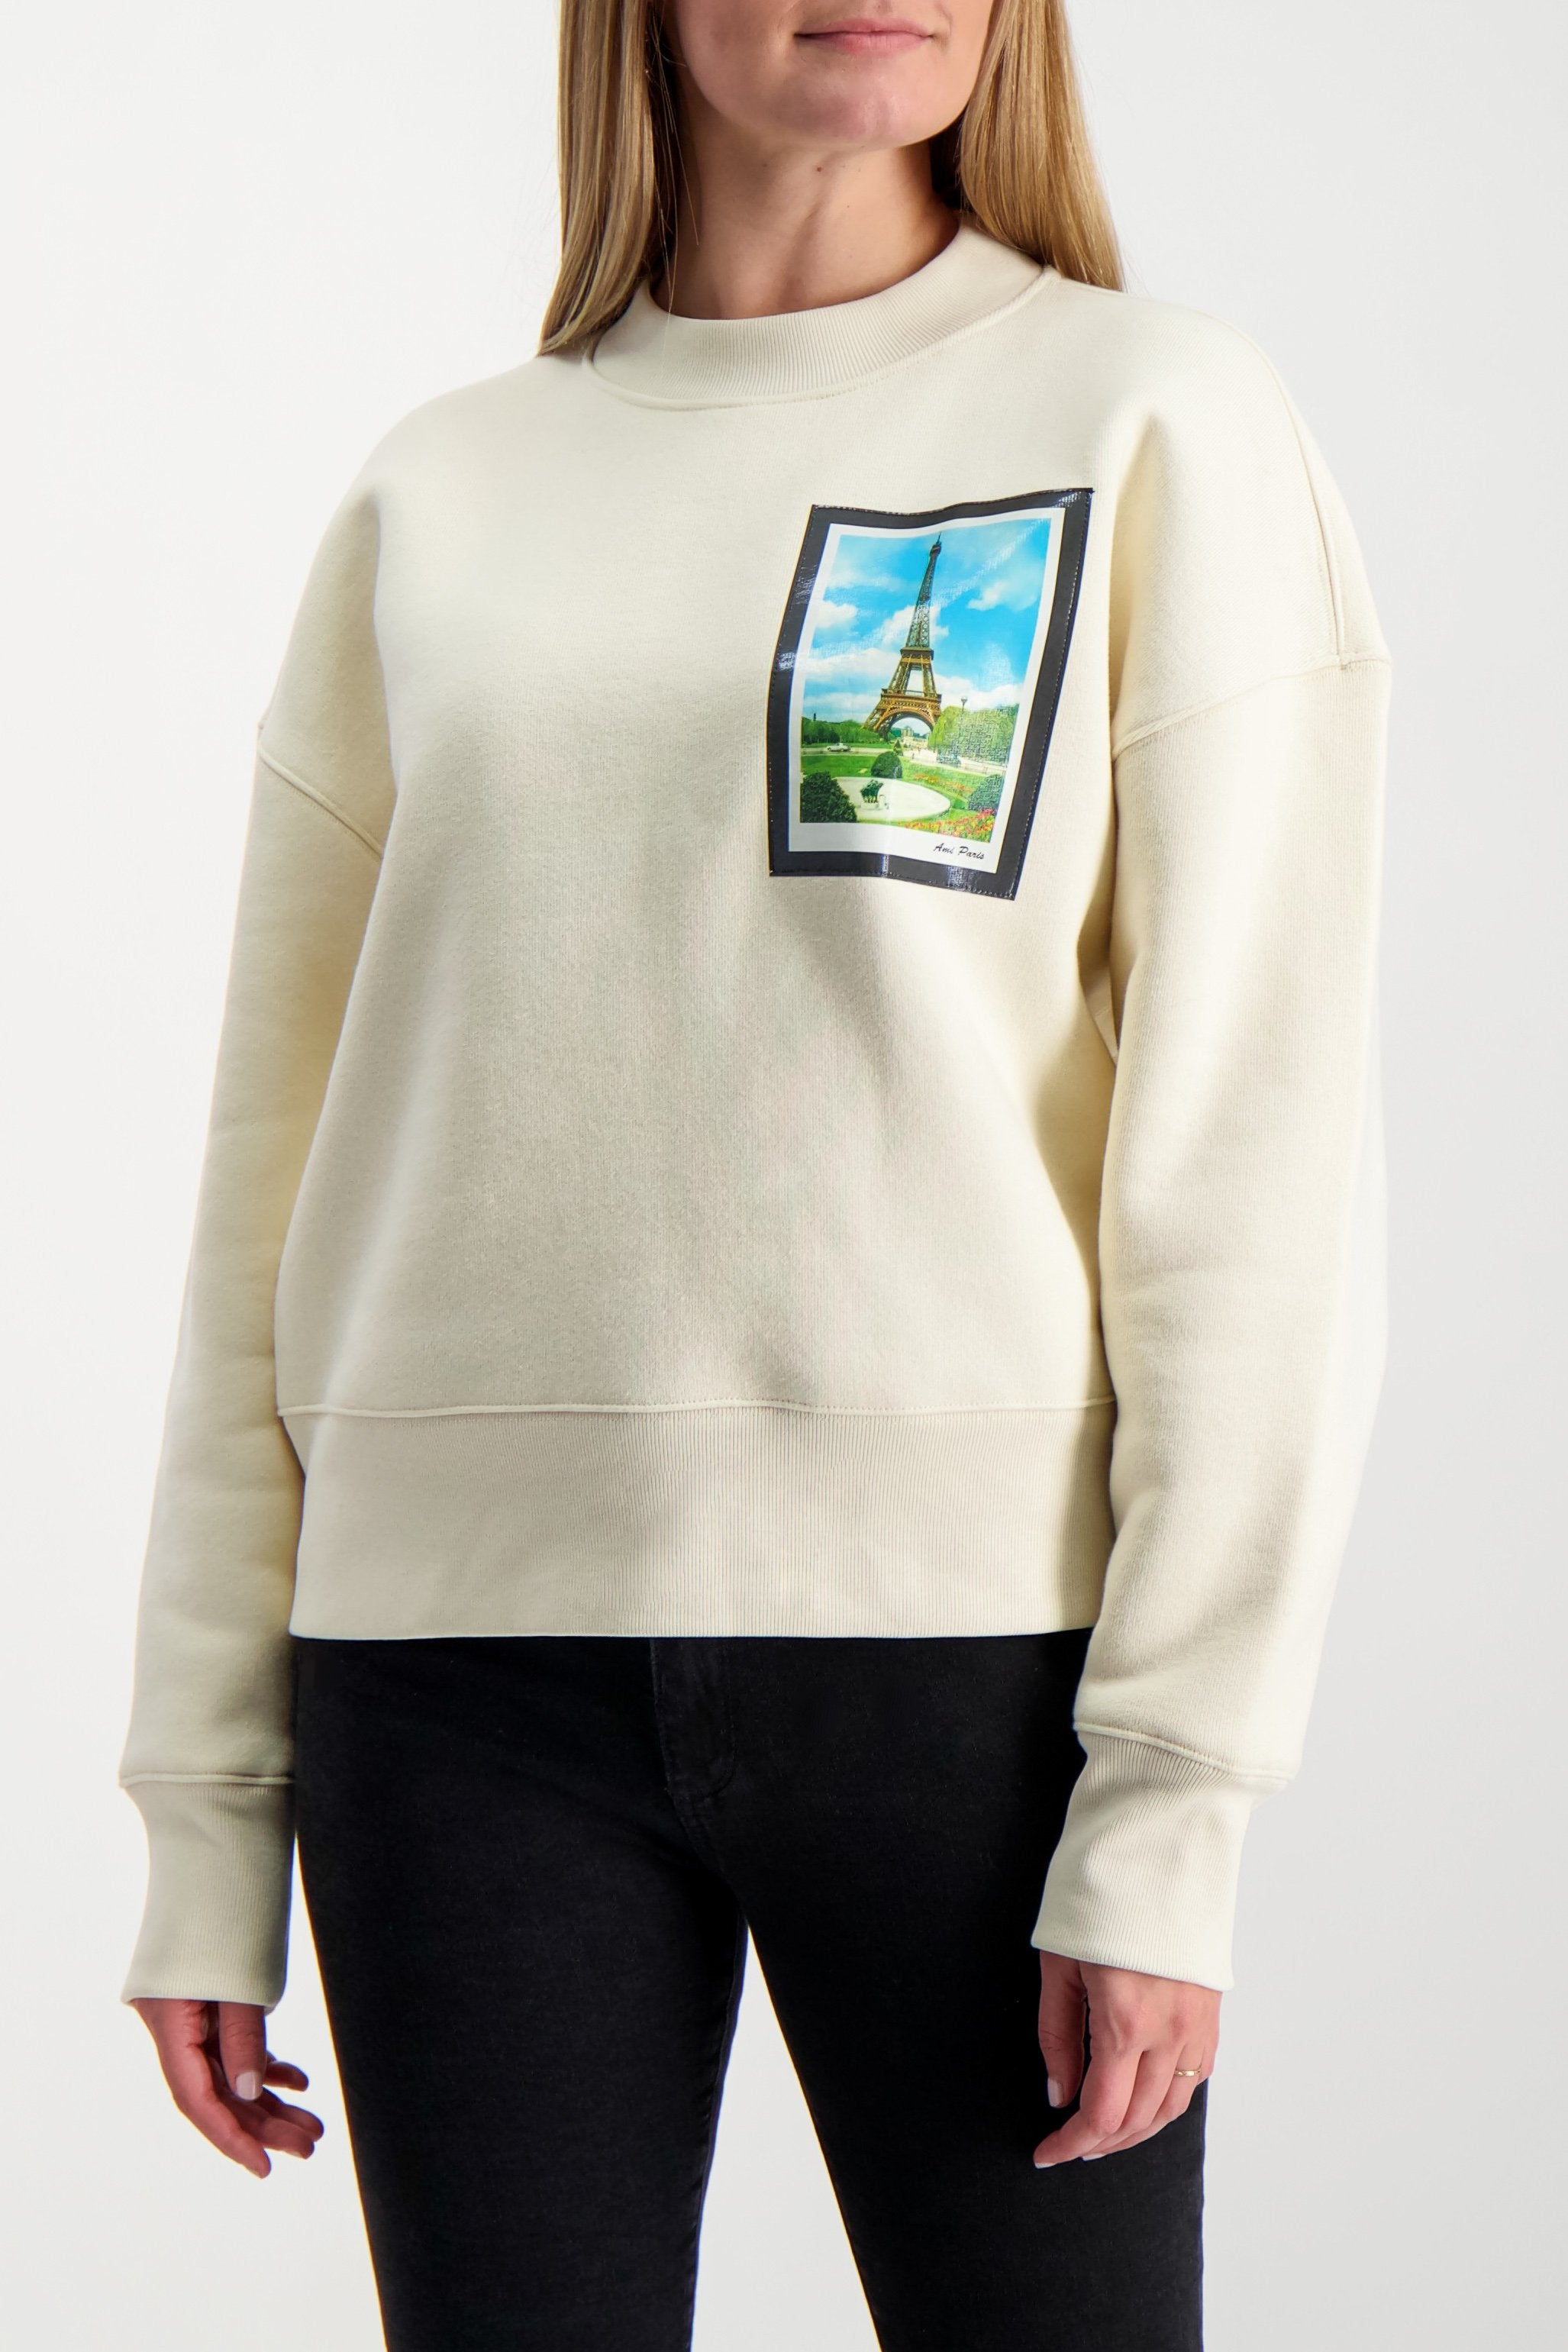 Front Crop Image of Model Wearing AMI Women's Postcard Sweatshirt